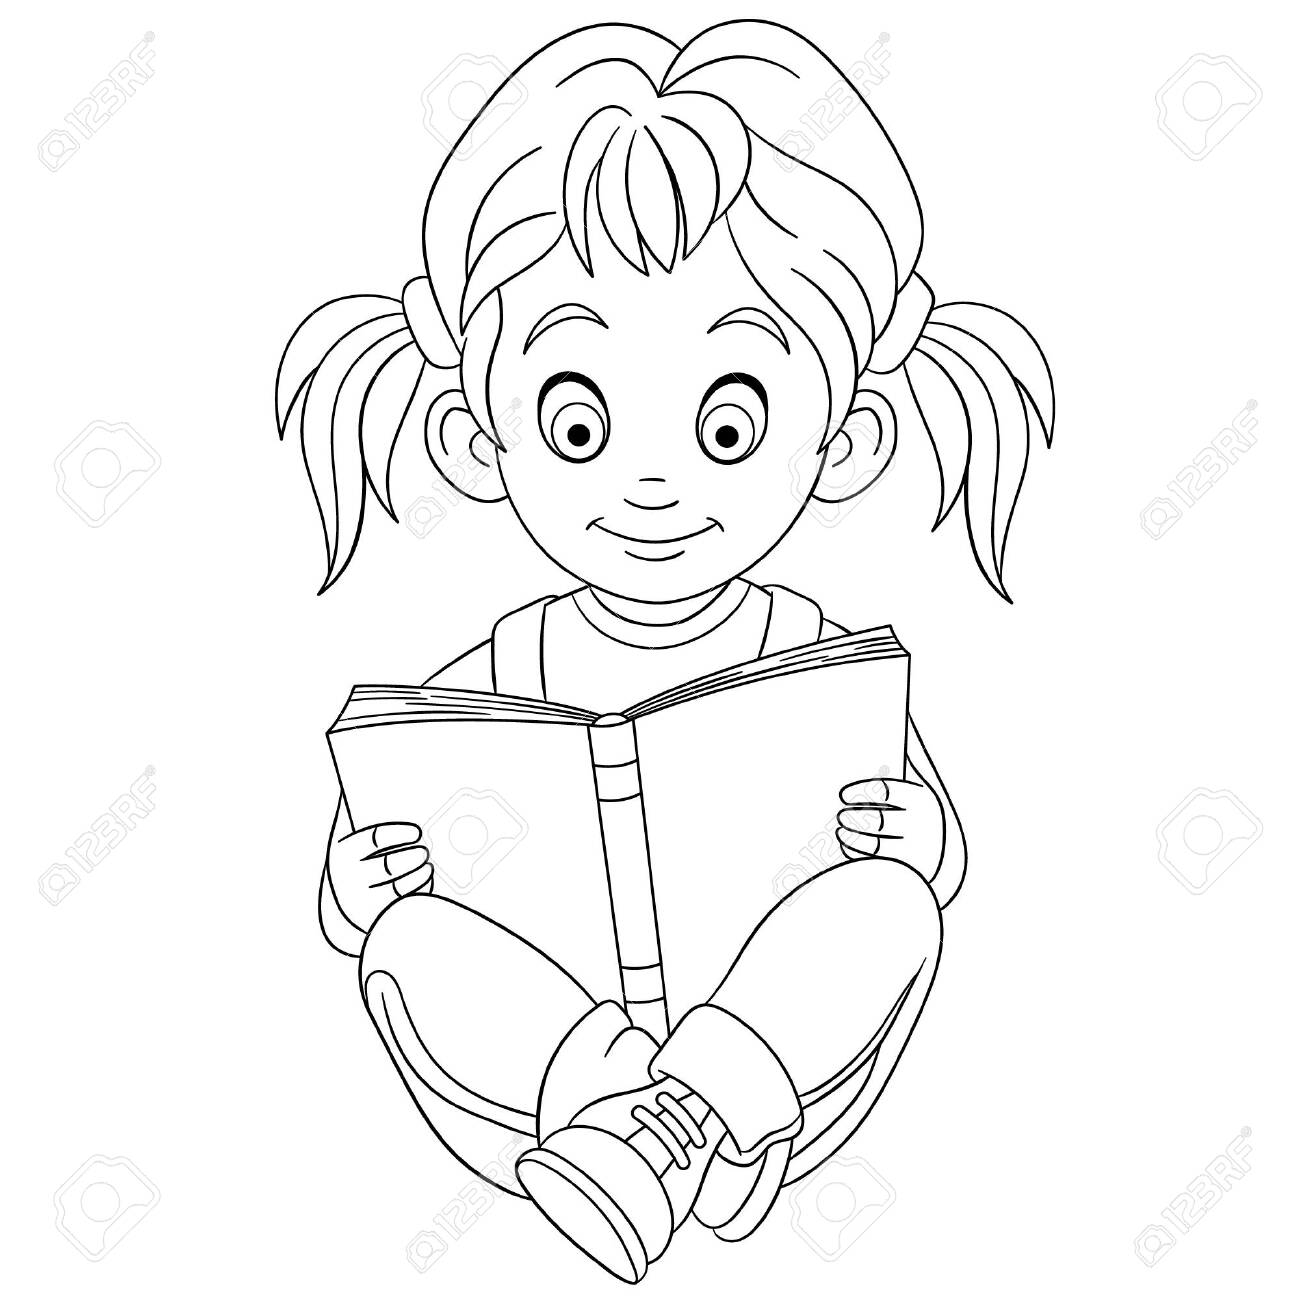 Coloring Page Coloring Picture Of Cartoon Girl Reading Childish Royalty Free Cliparts Vectors And Stock Illustration Image 134435450